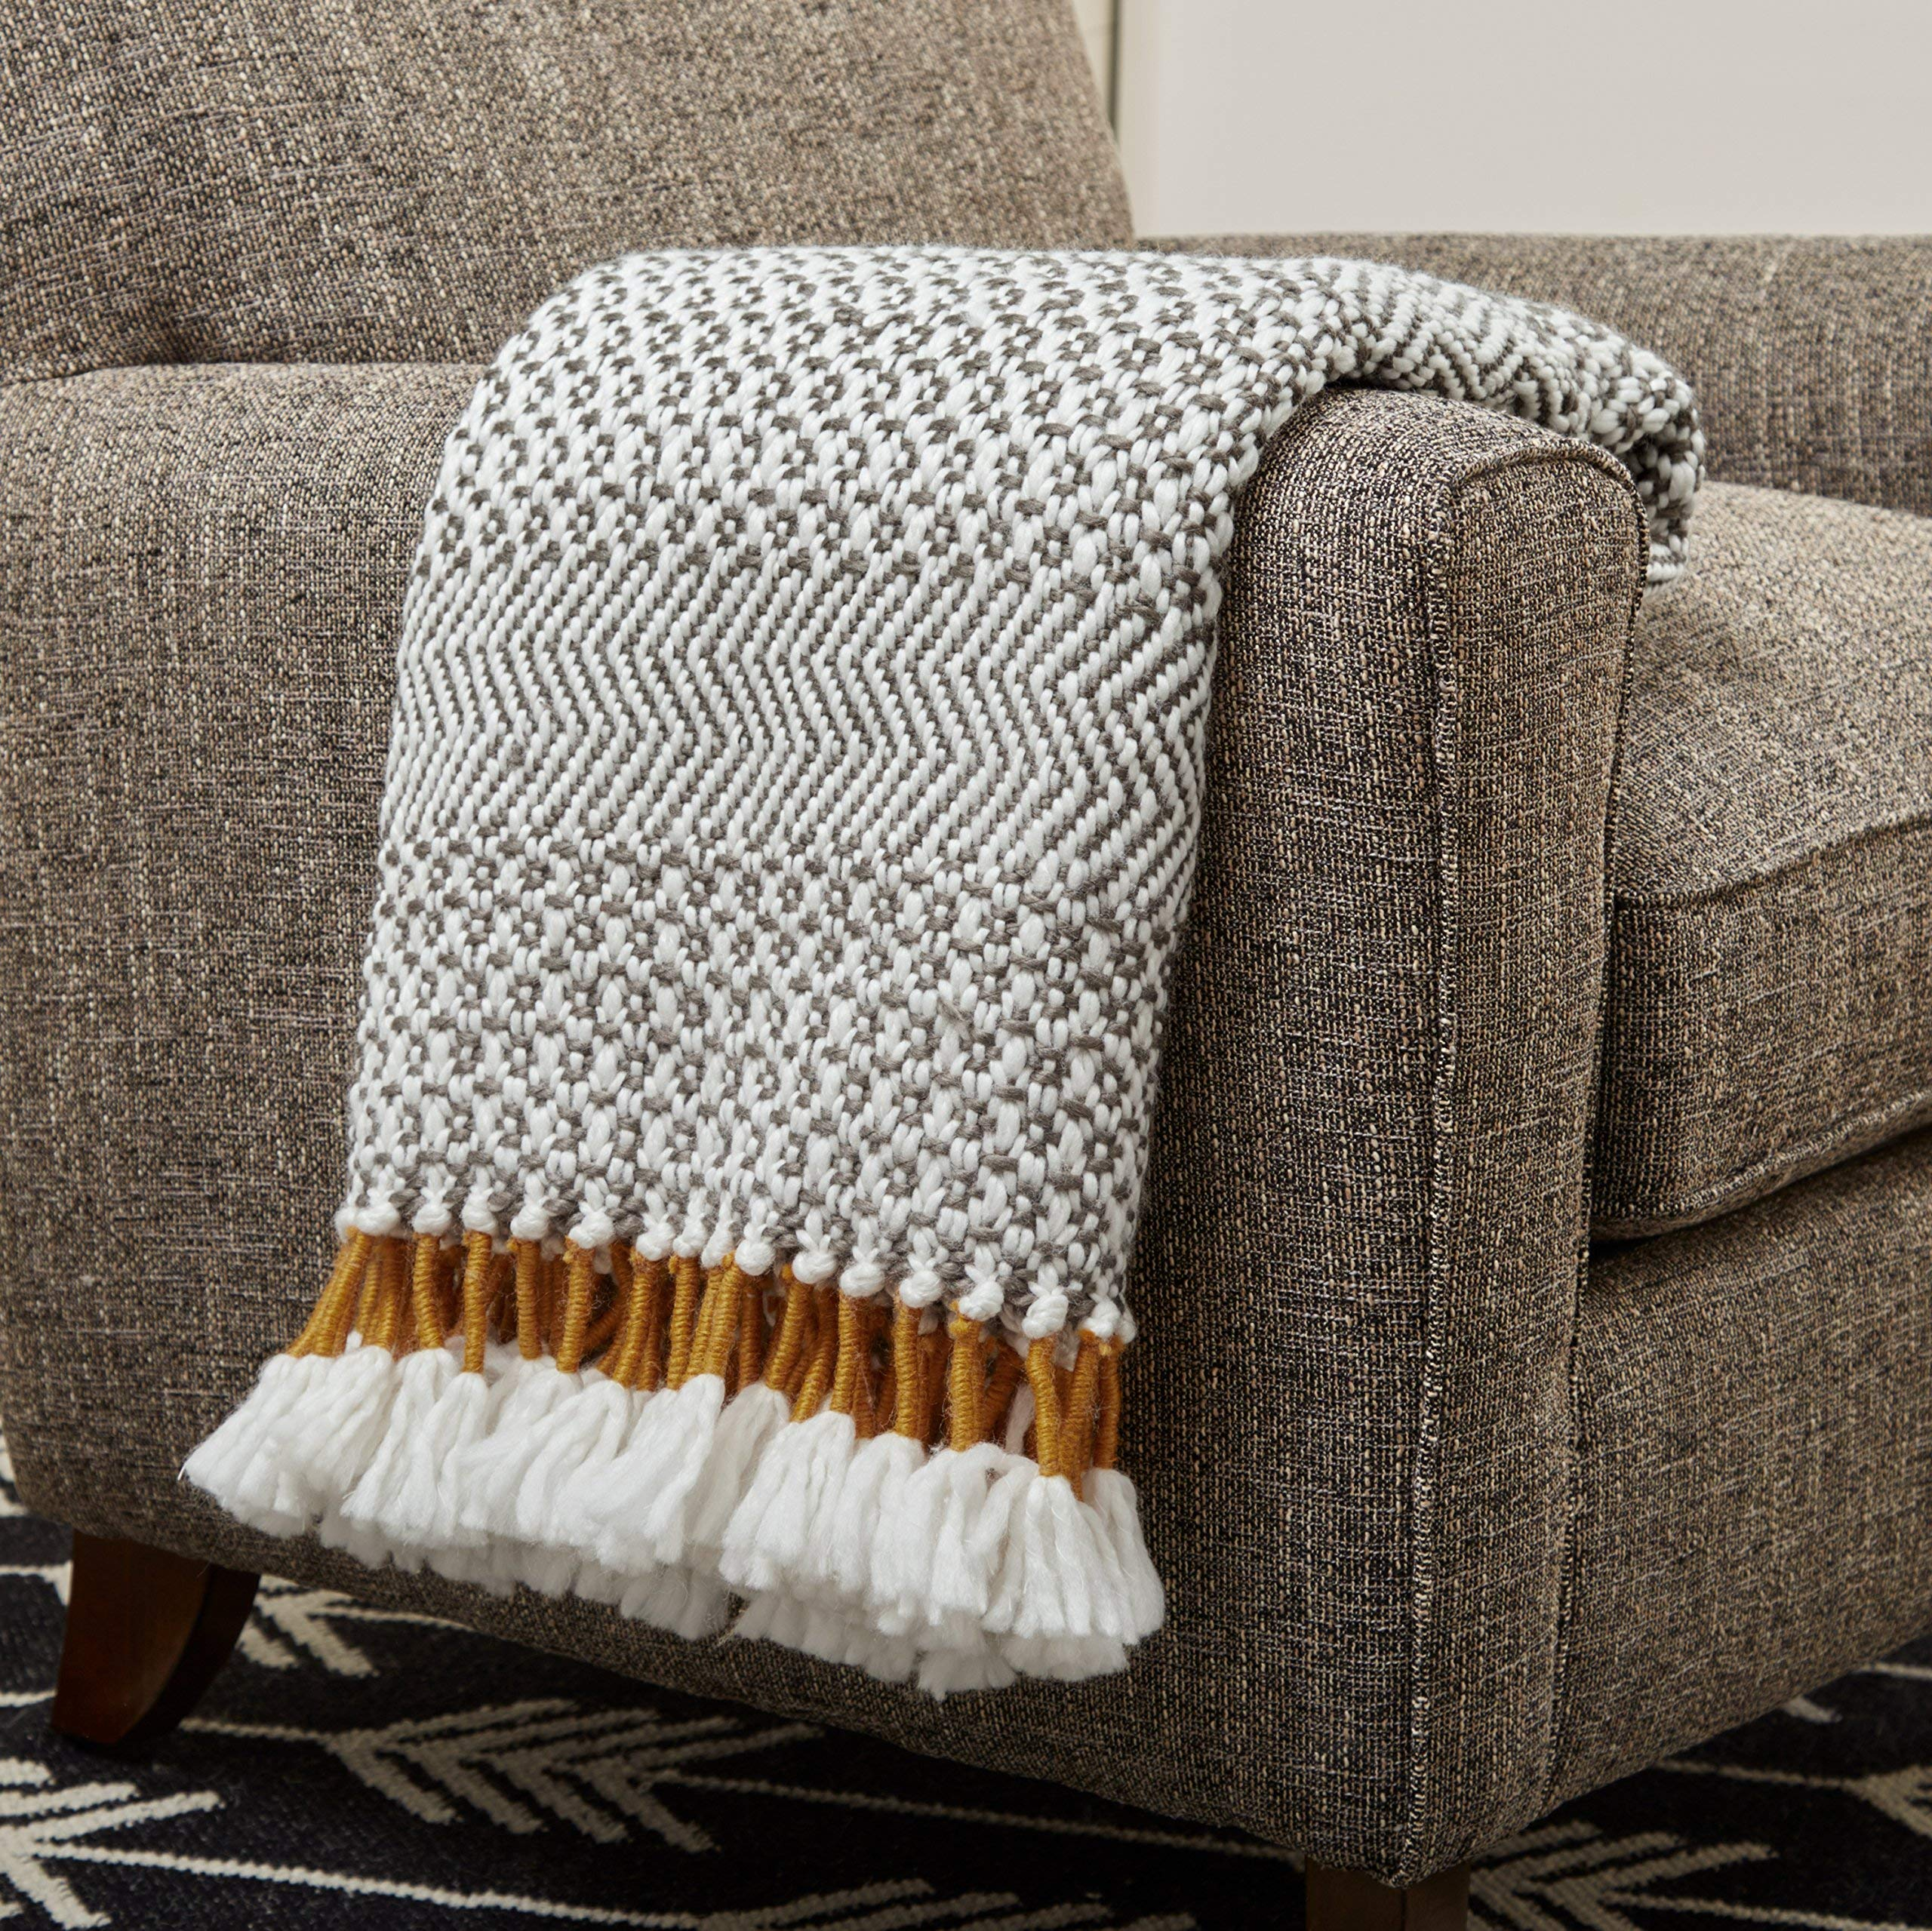 Rivet Modern Hand-Woven Stripe Fringe Throw Blanket, Soft and Stylish, 50'' x 60'', Charcoal by Rivet